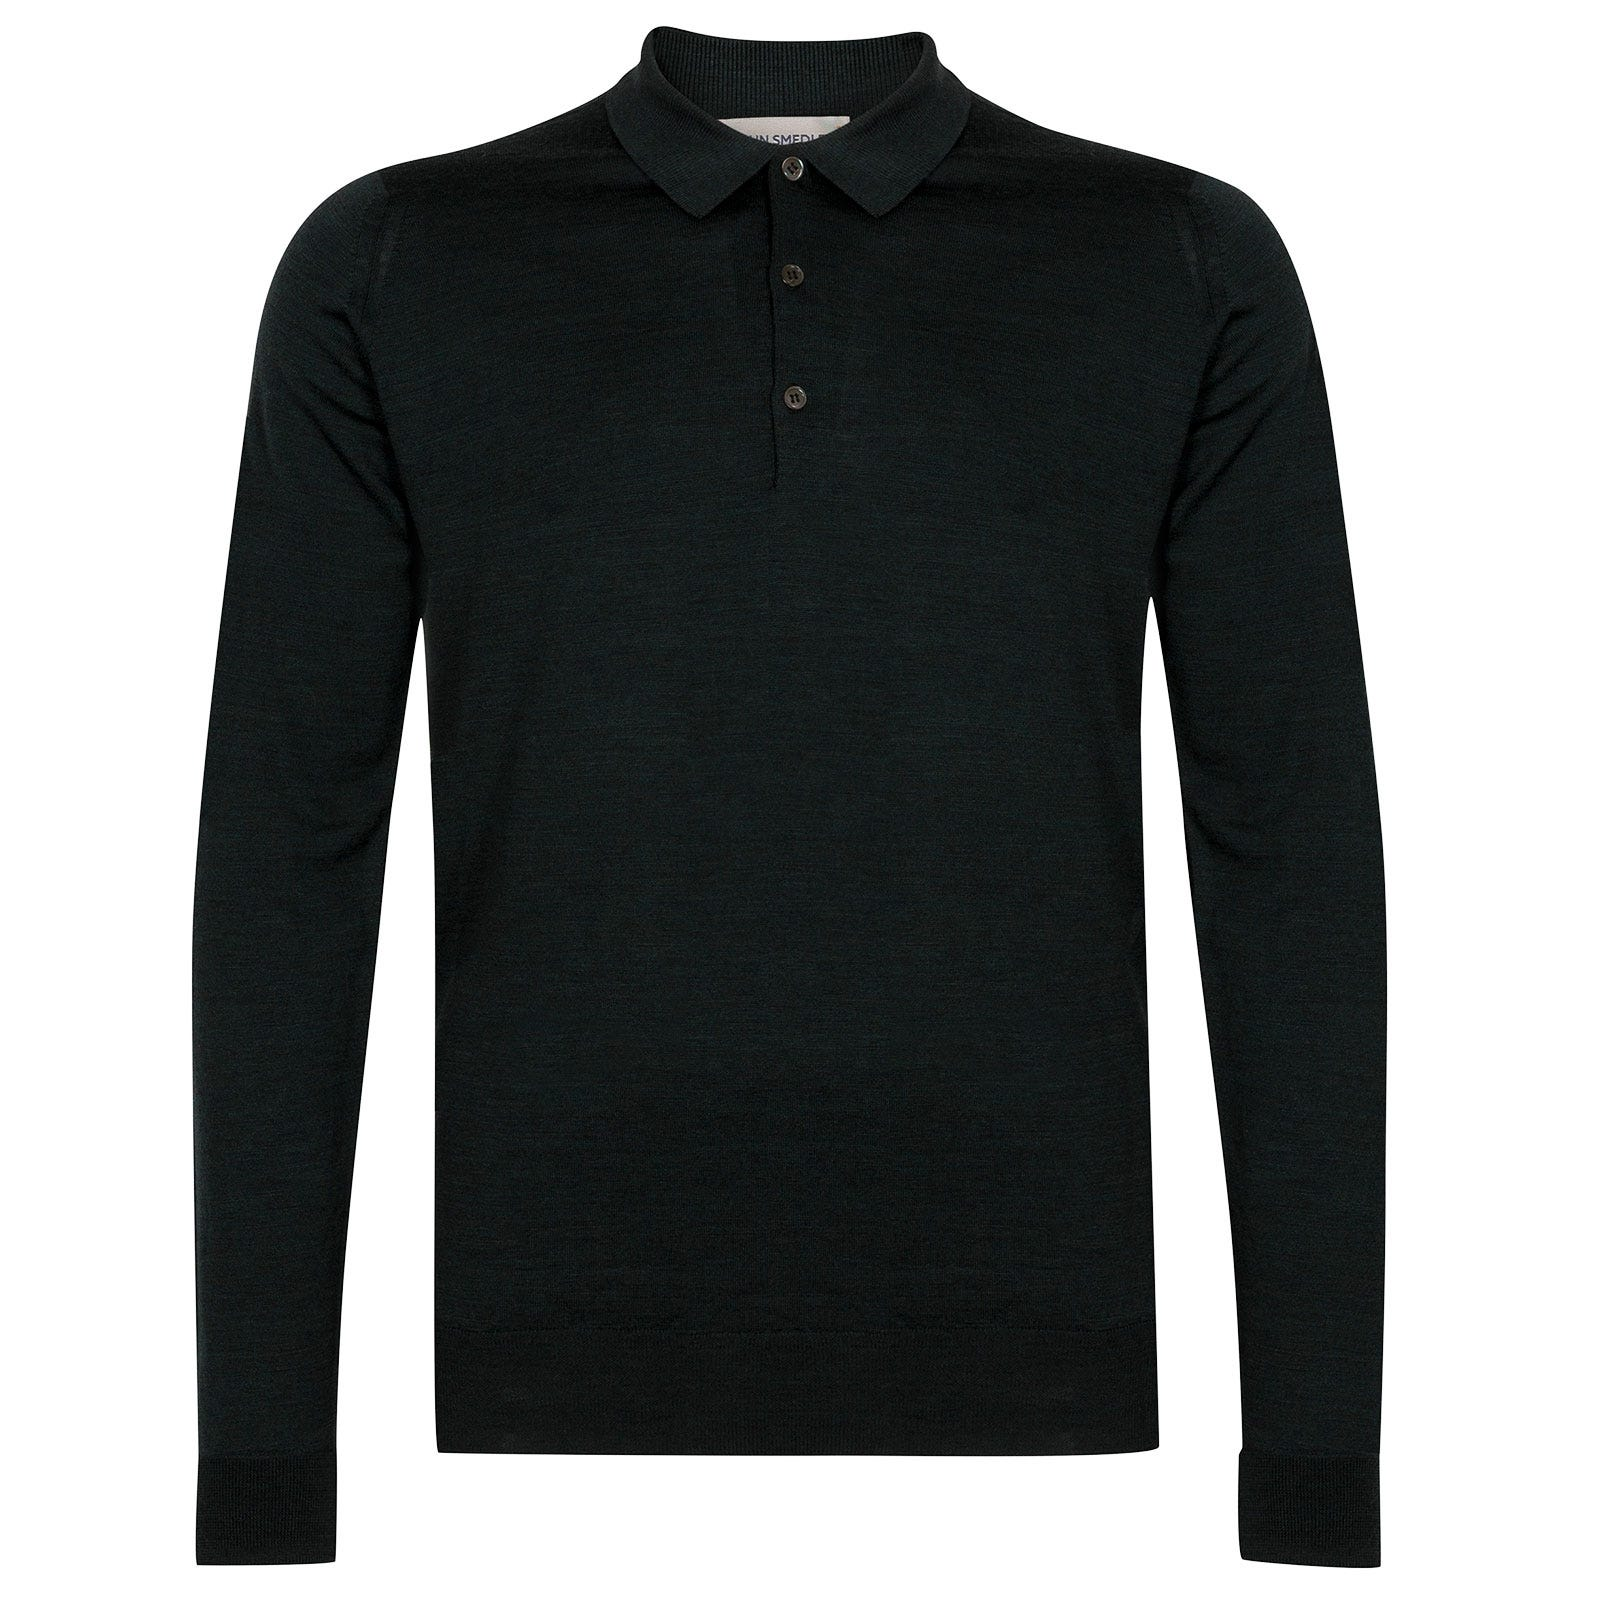 John Smedley Cotswold Merino Wool Shirt in Racing Green-S